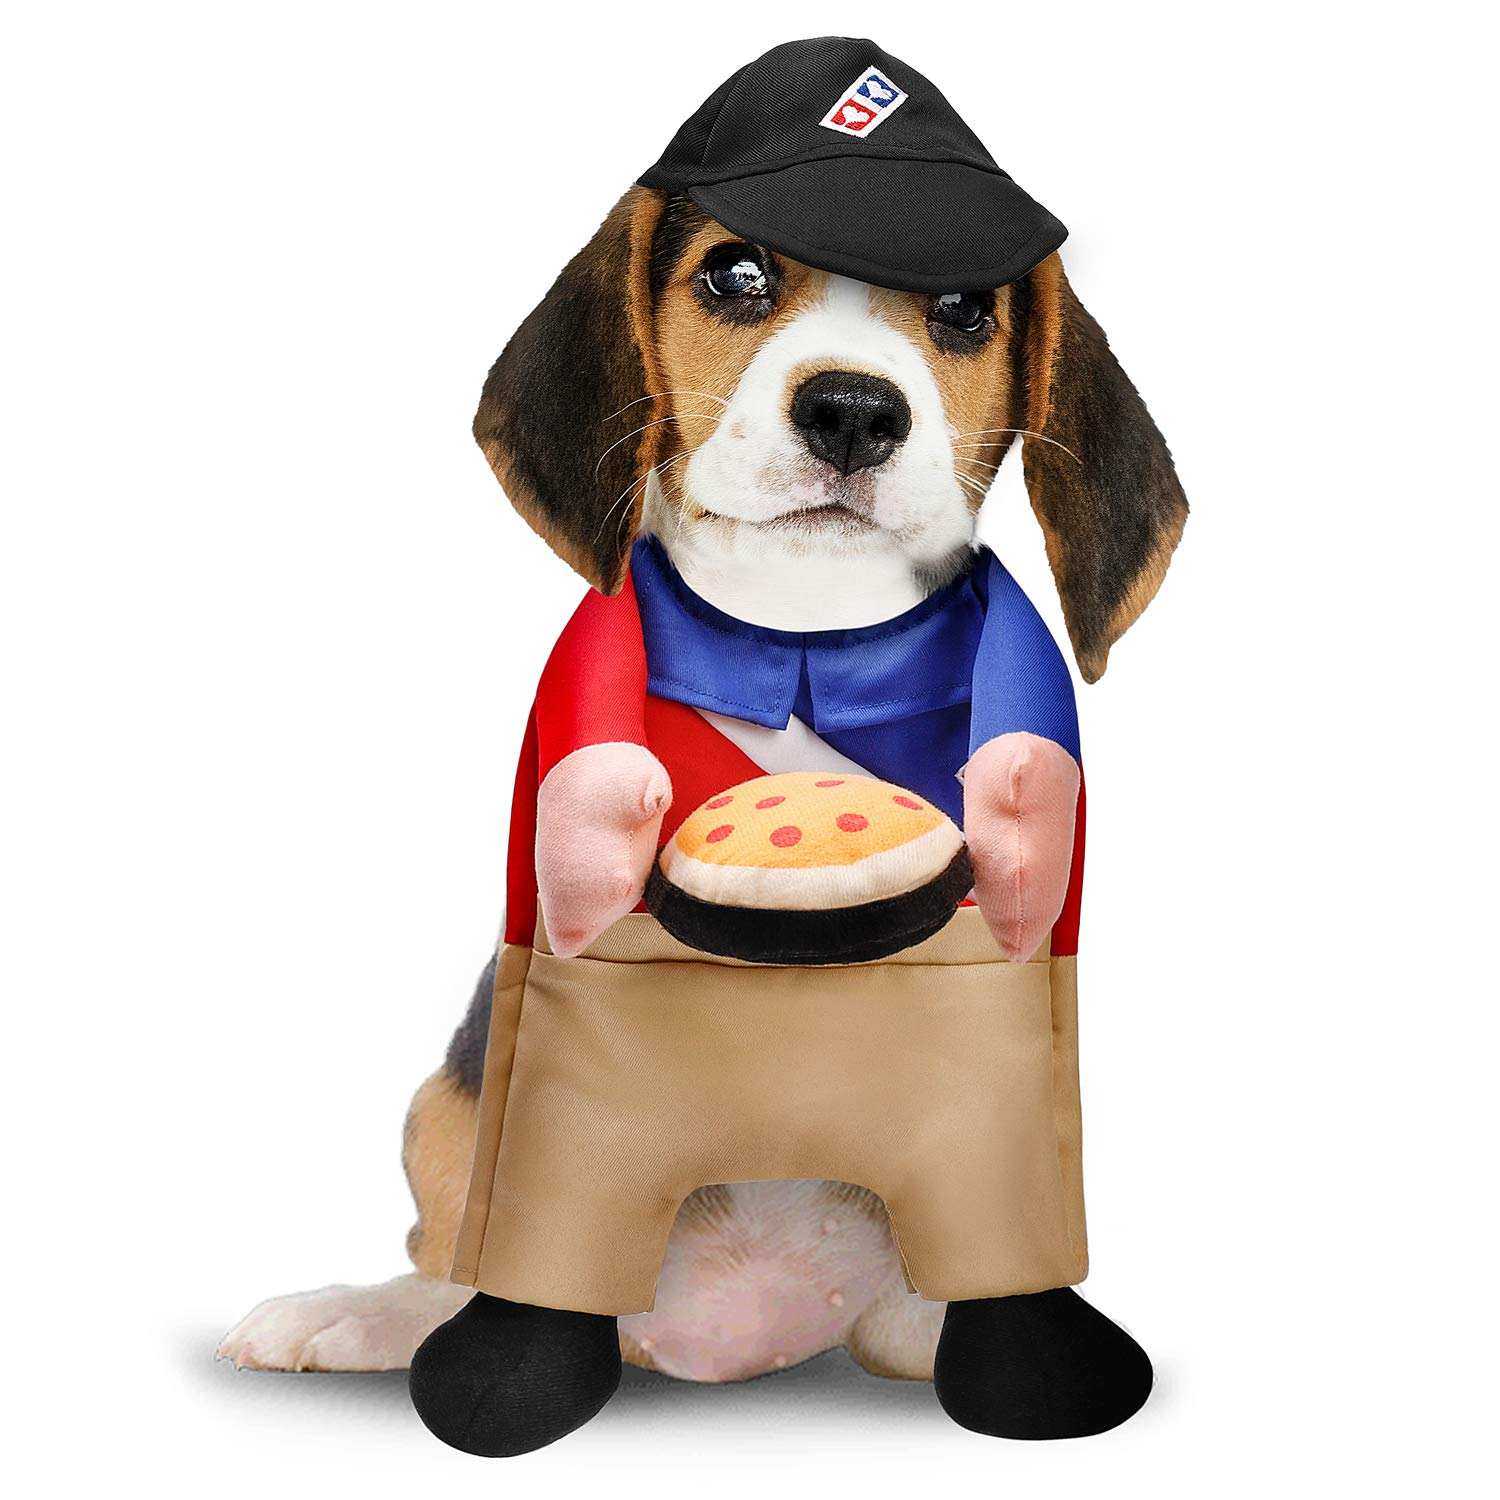 Toozey Dog Costume, Funny Pizza Delivery Costume for Dogs, Lovely Dog  Halloween Costume, Dog Costumes for Large, Medium, Small Dogs, XS,L